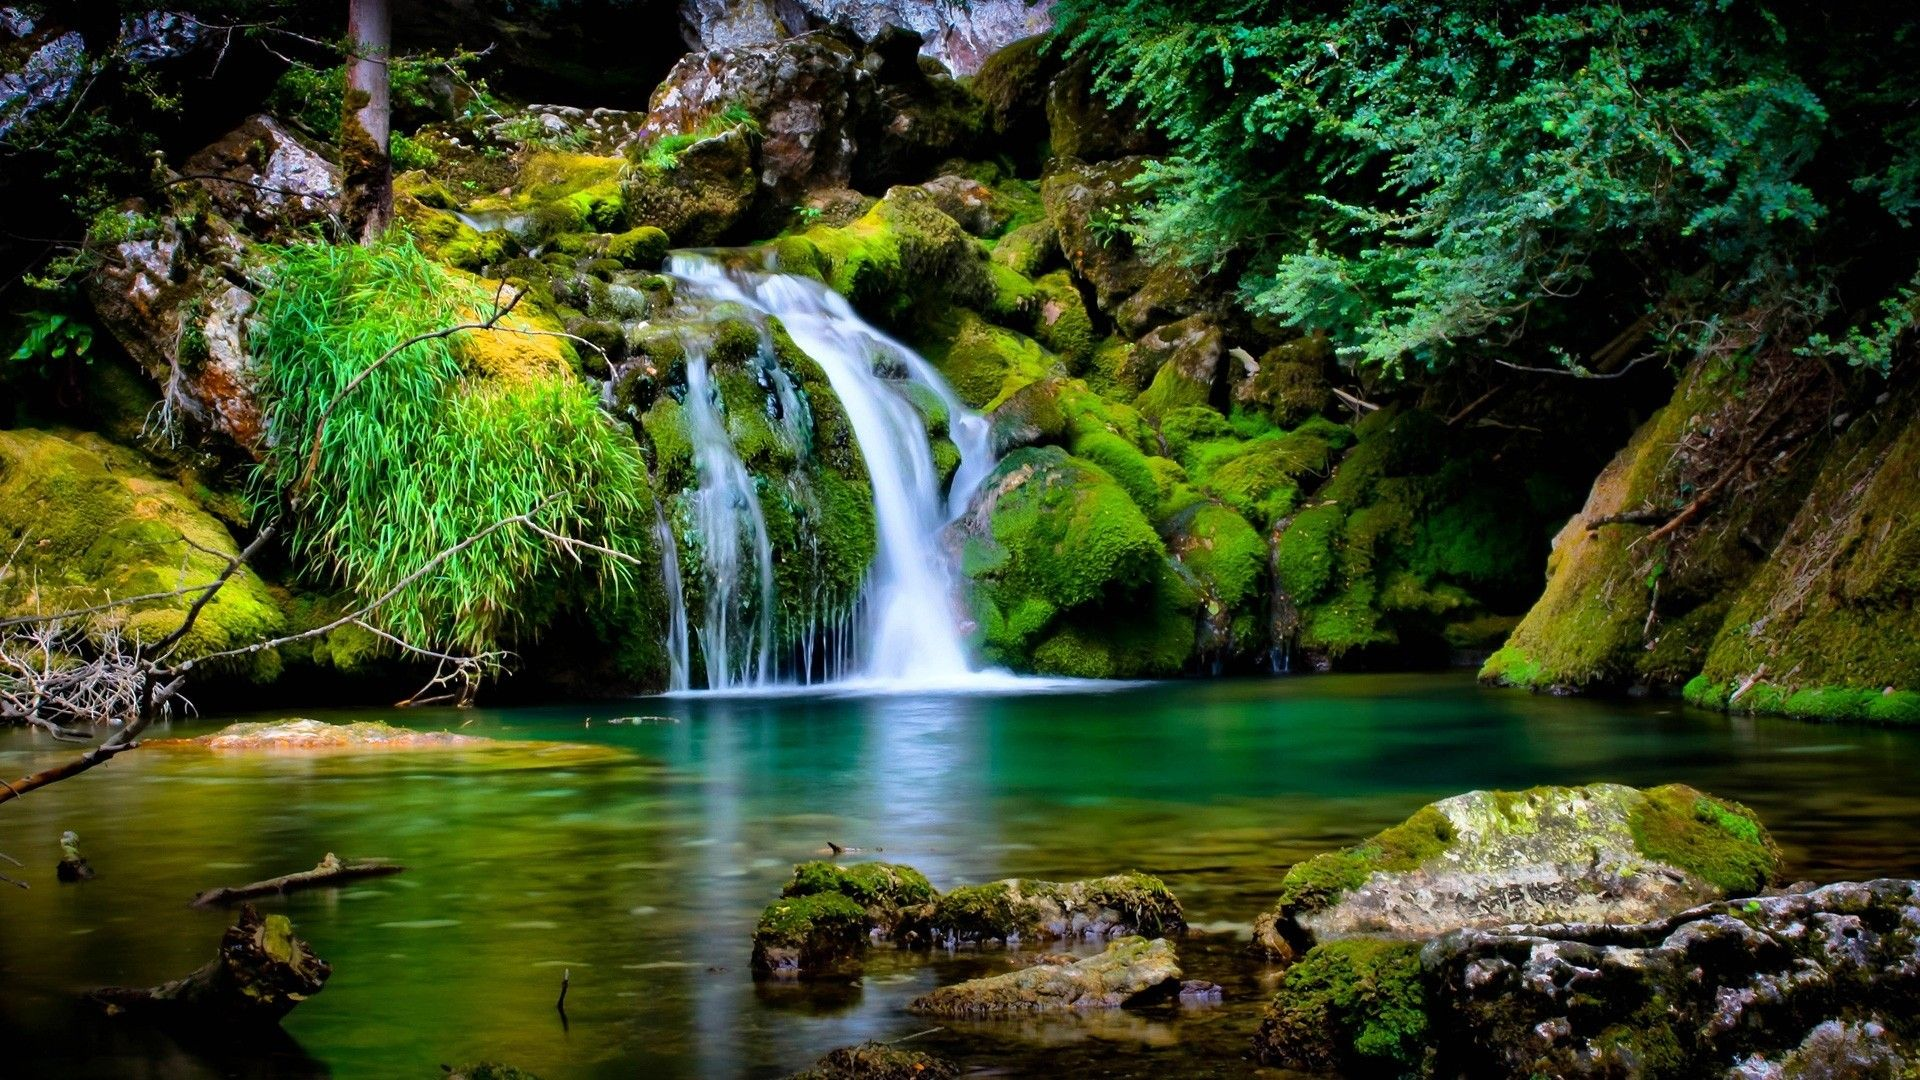 Forest Vercors Screen Saver Submit Spring Screensaver Your Top Hd Wallpapers Id63981 Shared With Images Waterfall Scenery Beautiful Nature Wallpaper Waterfall Wallpaper